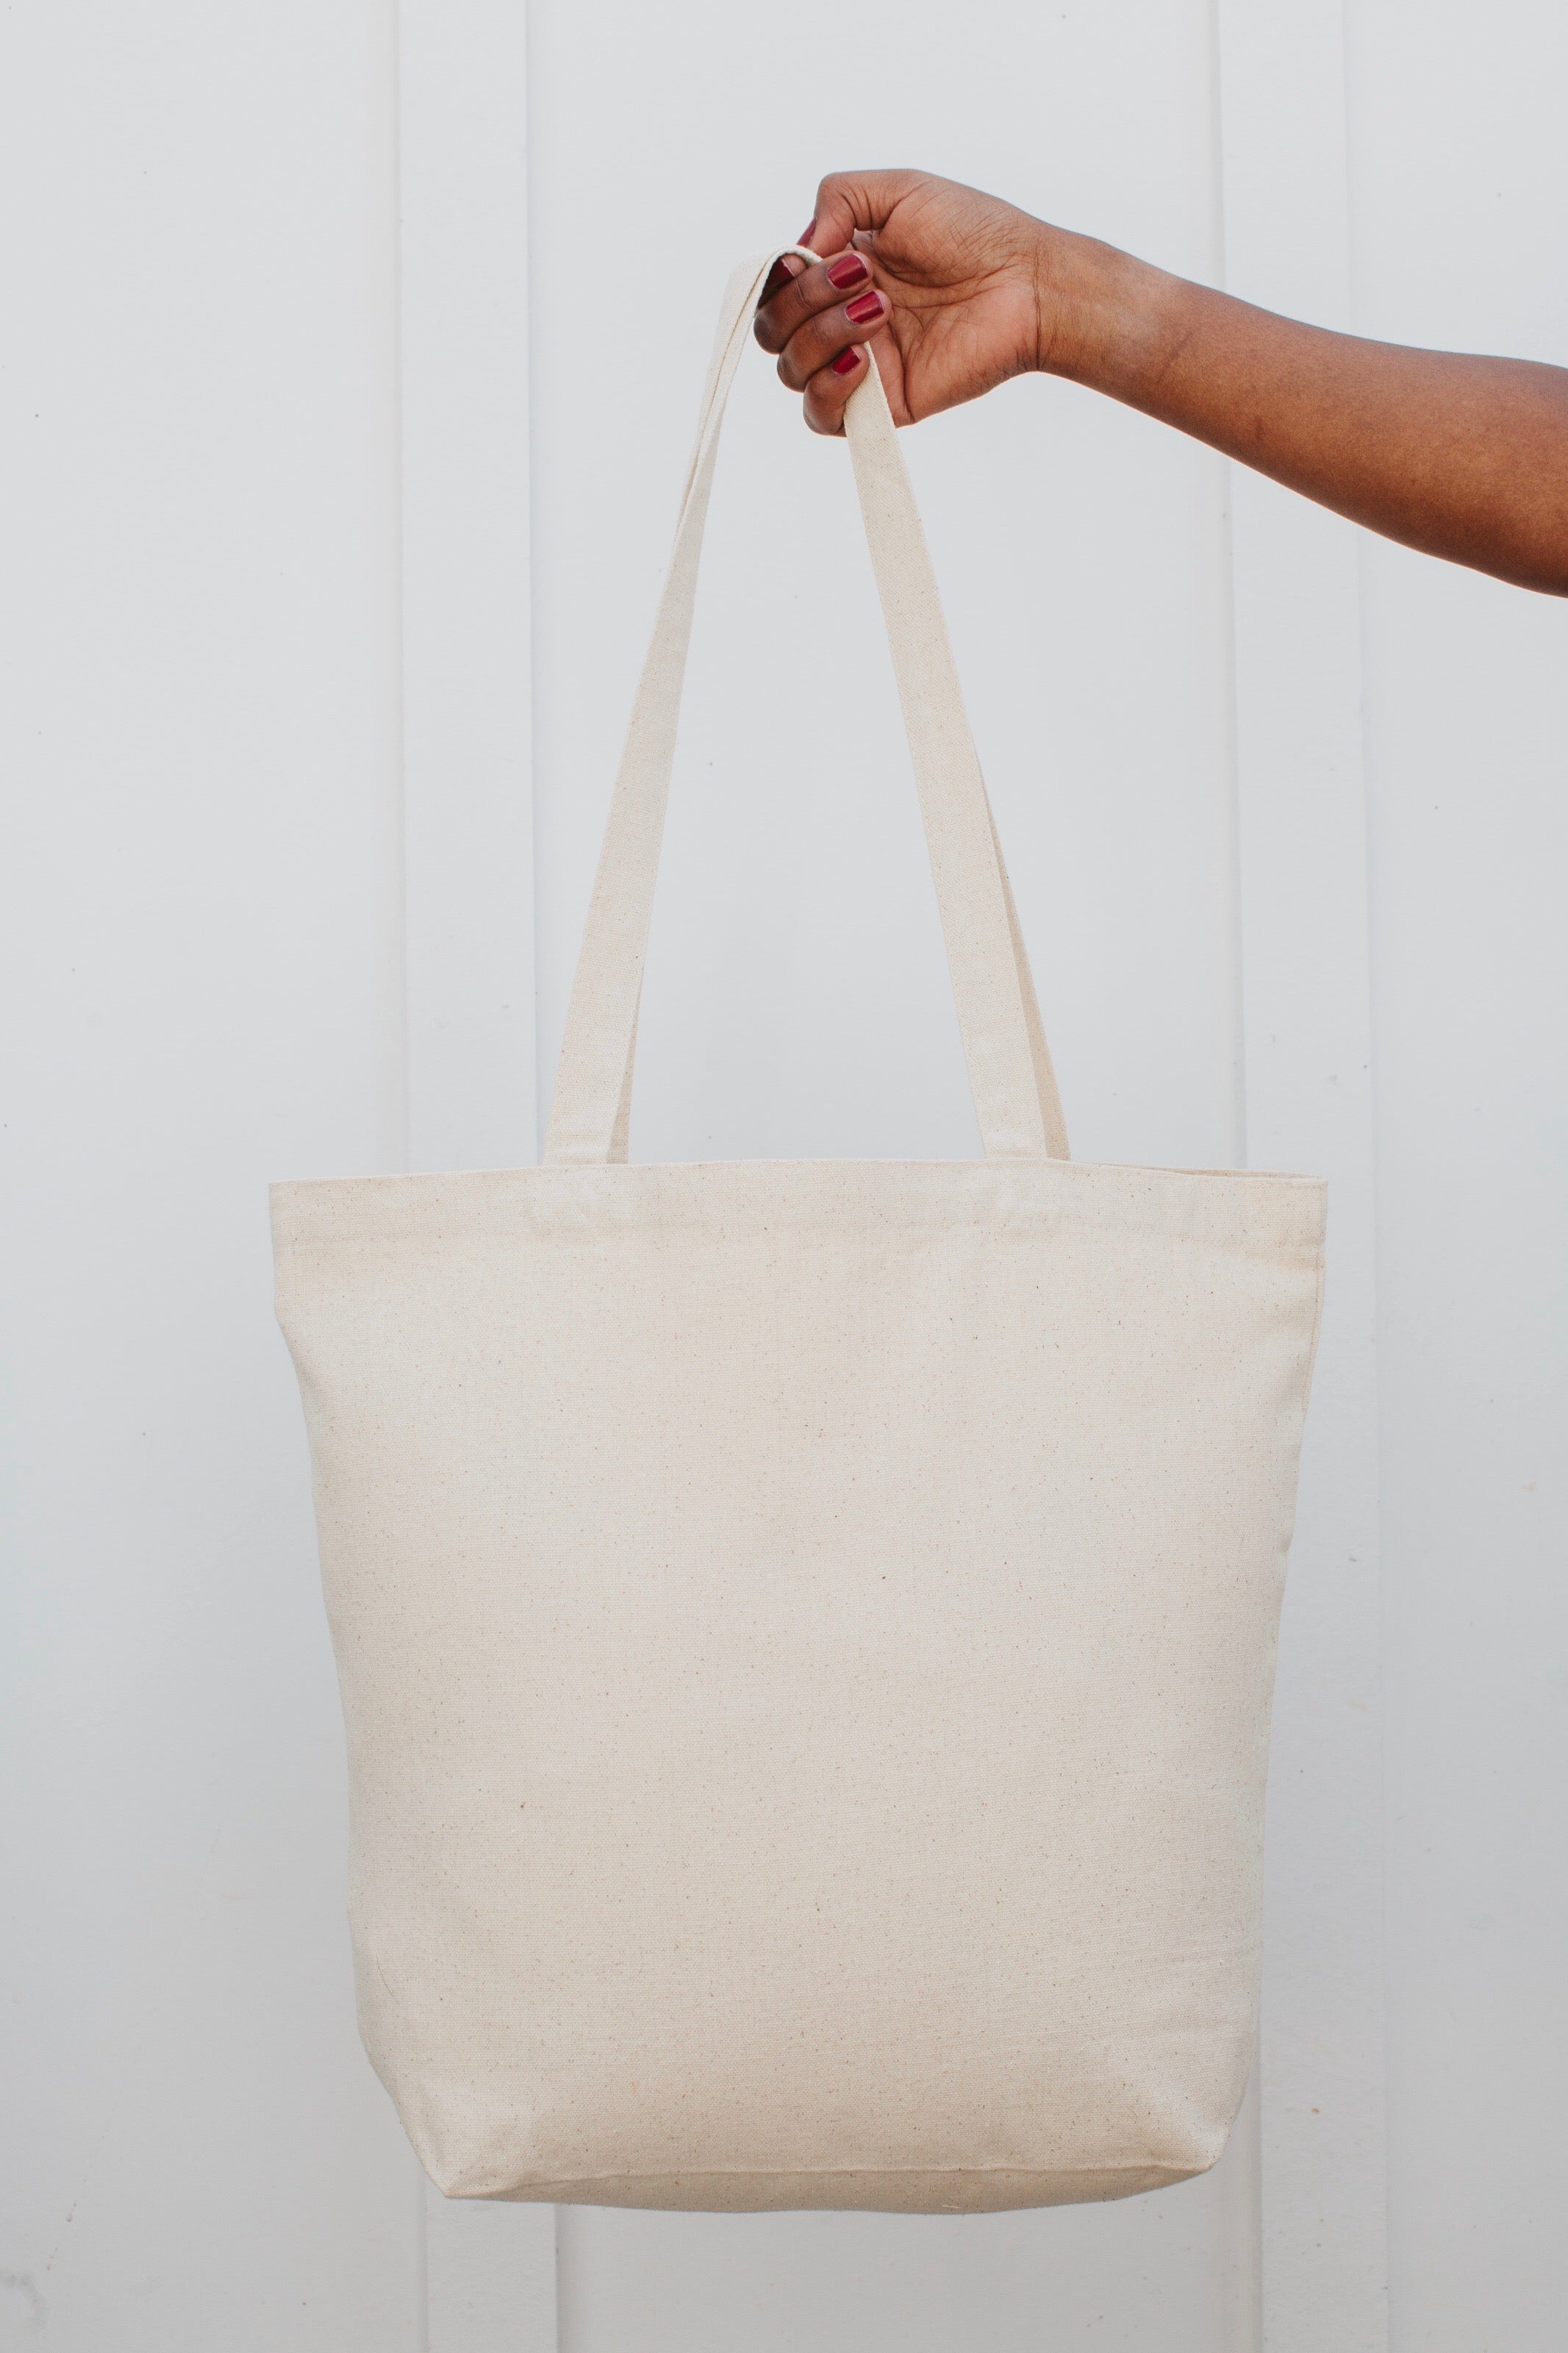 'Pouring a New Narrative'  Tote Bag